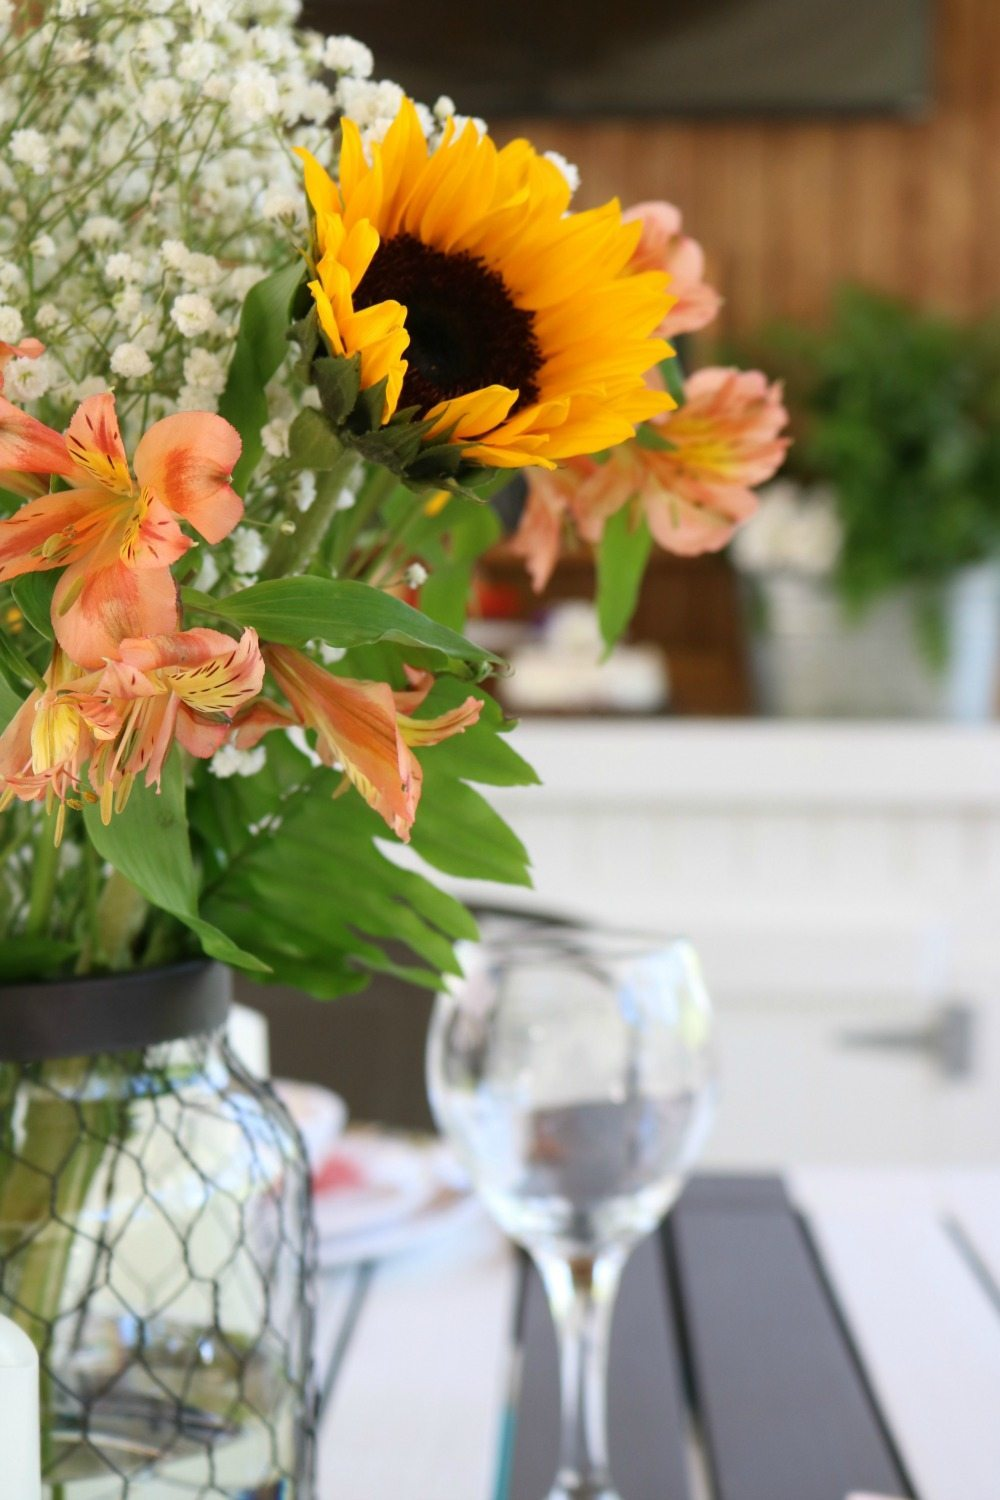 Grocery store flowers in Better Homes and Gardens chicken wire candle holder